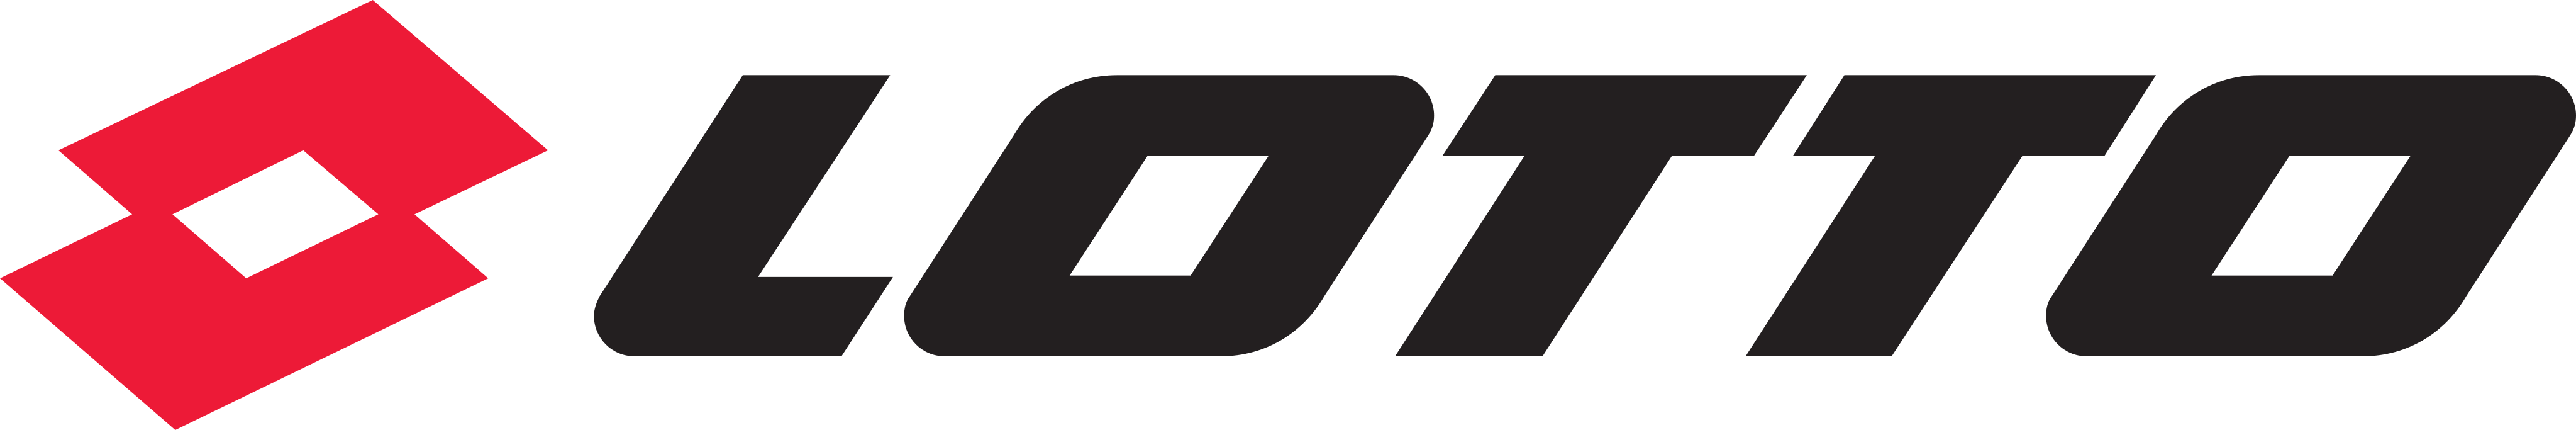 lotto logo - Lotto Logo